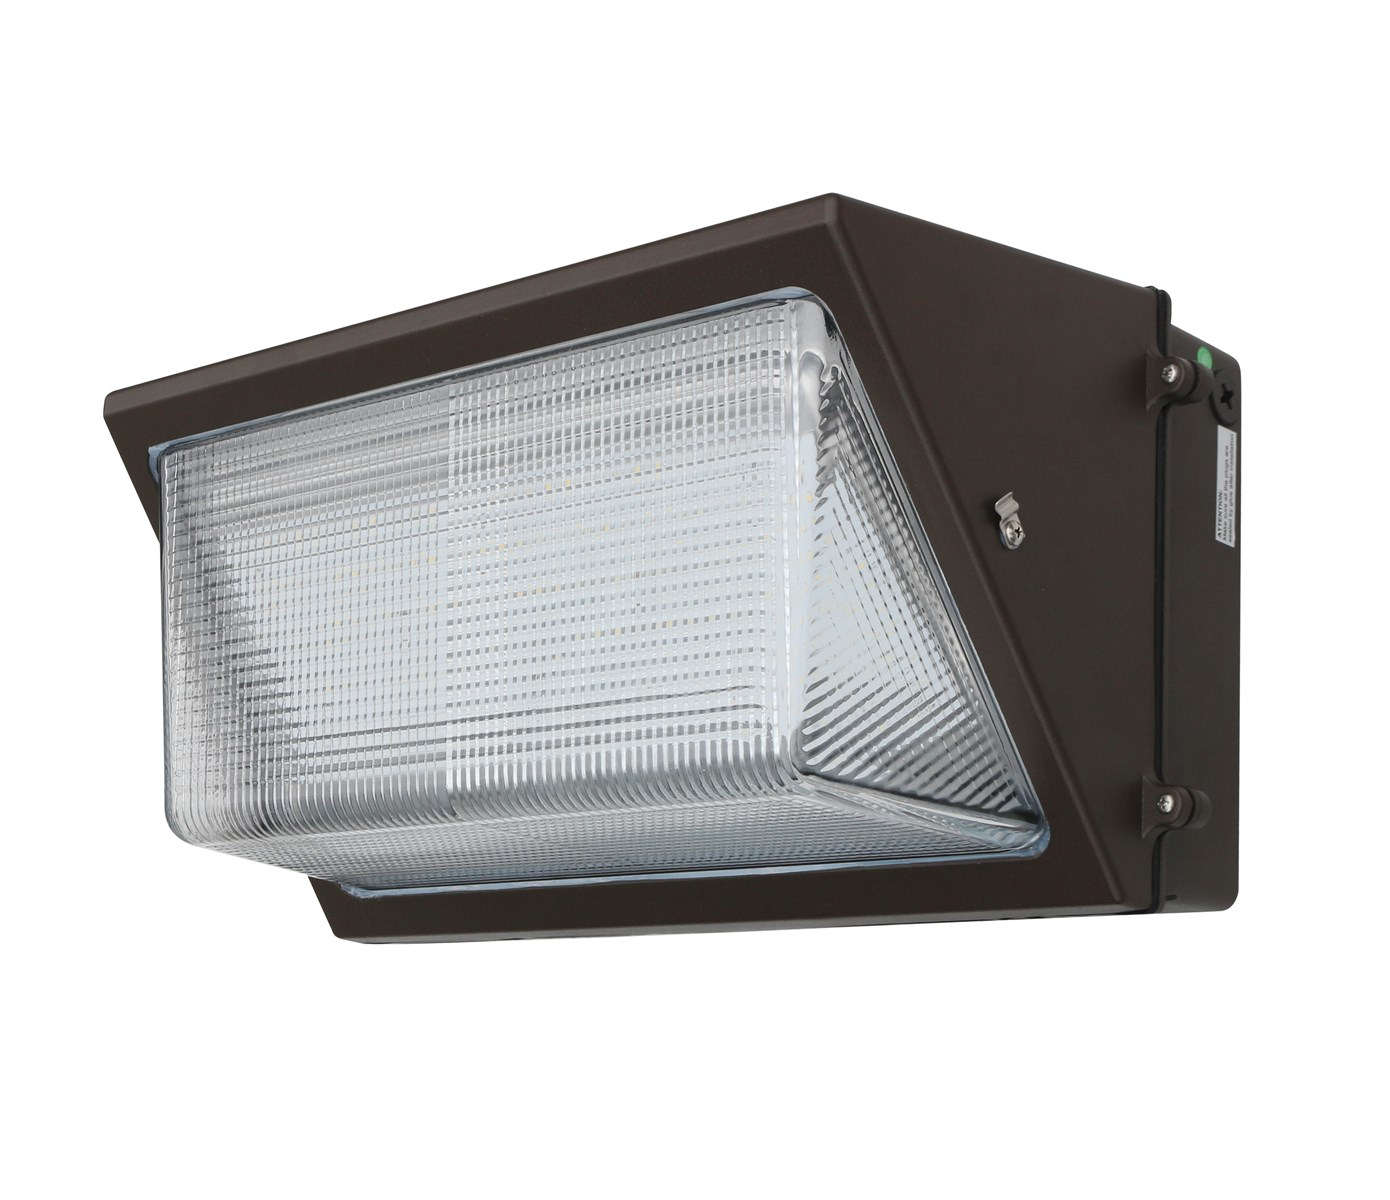 Inogeno WMG Dimmable & CCT Tunable Series 20W~80W LED Wall Packs LED Wall Packs